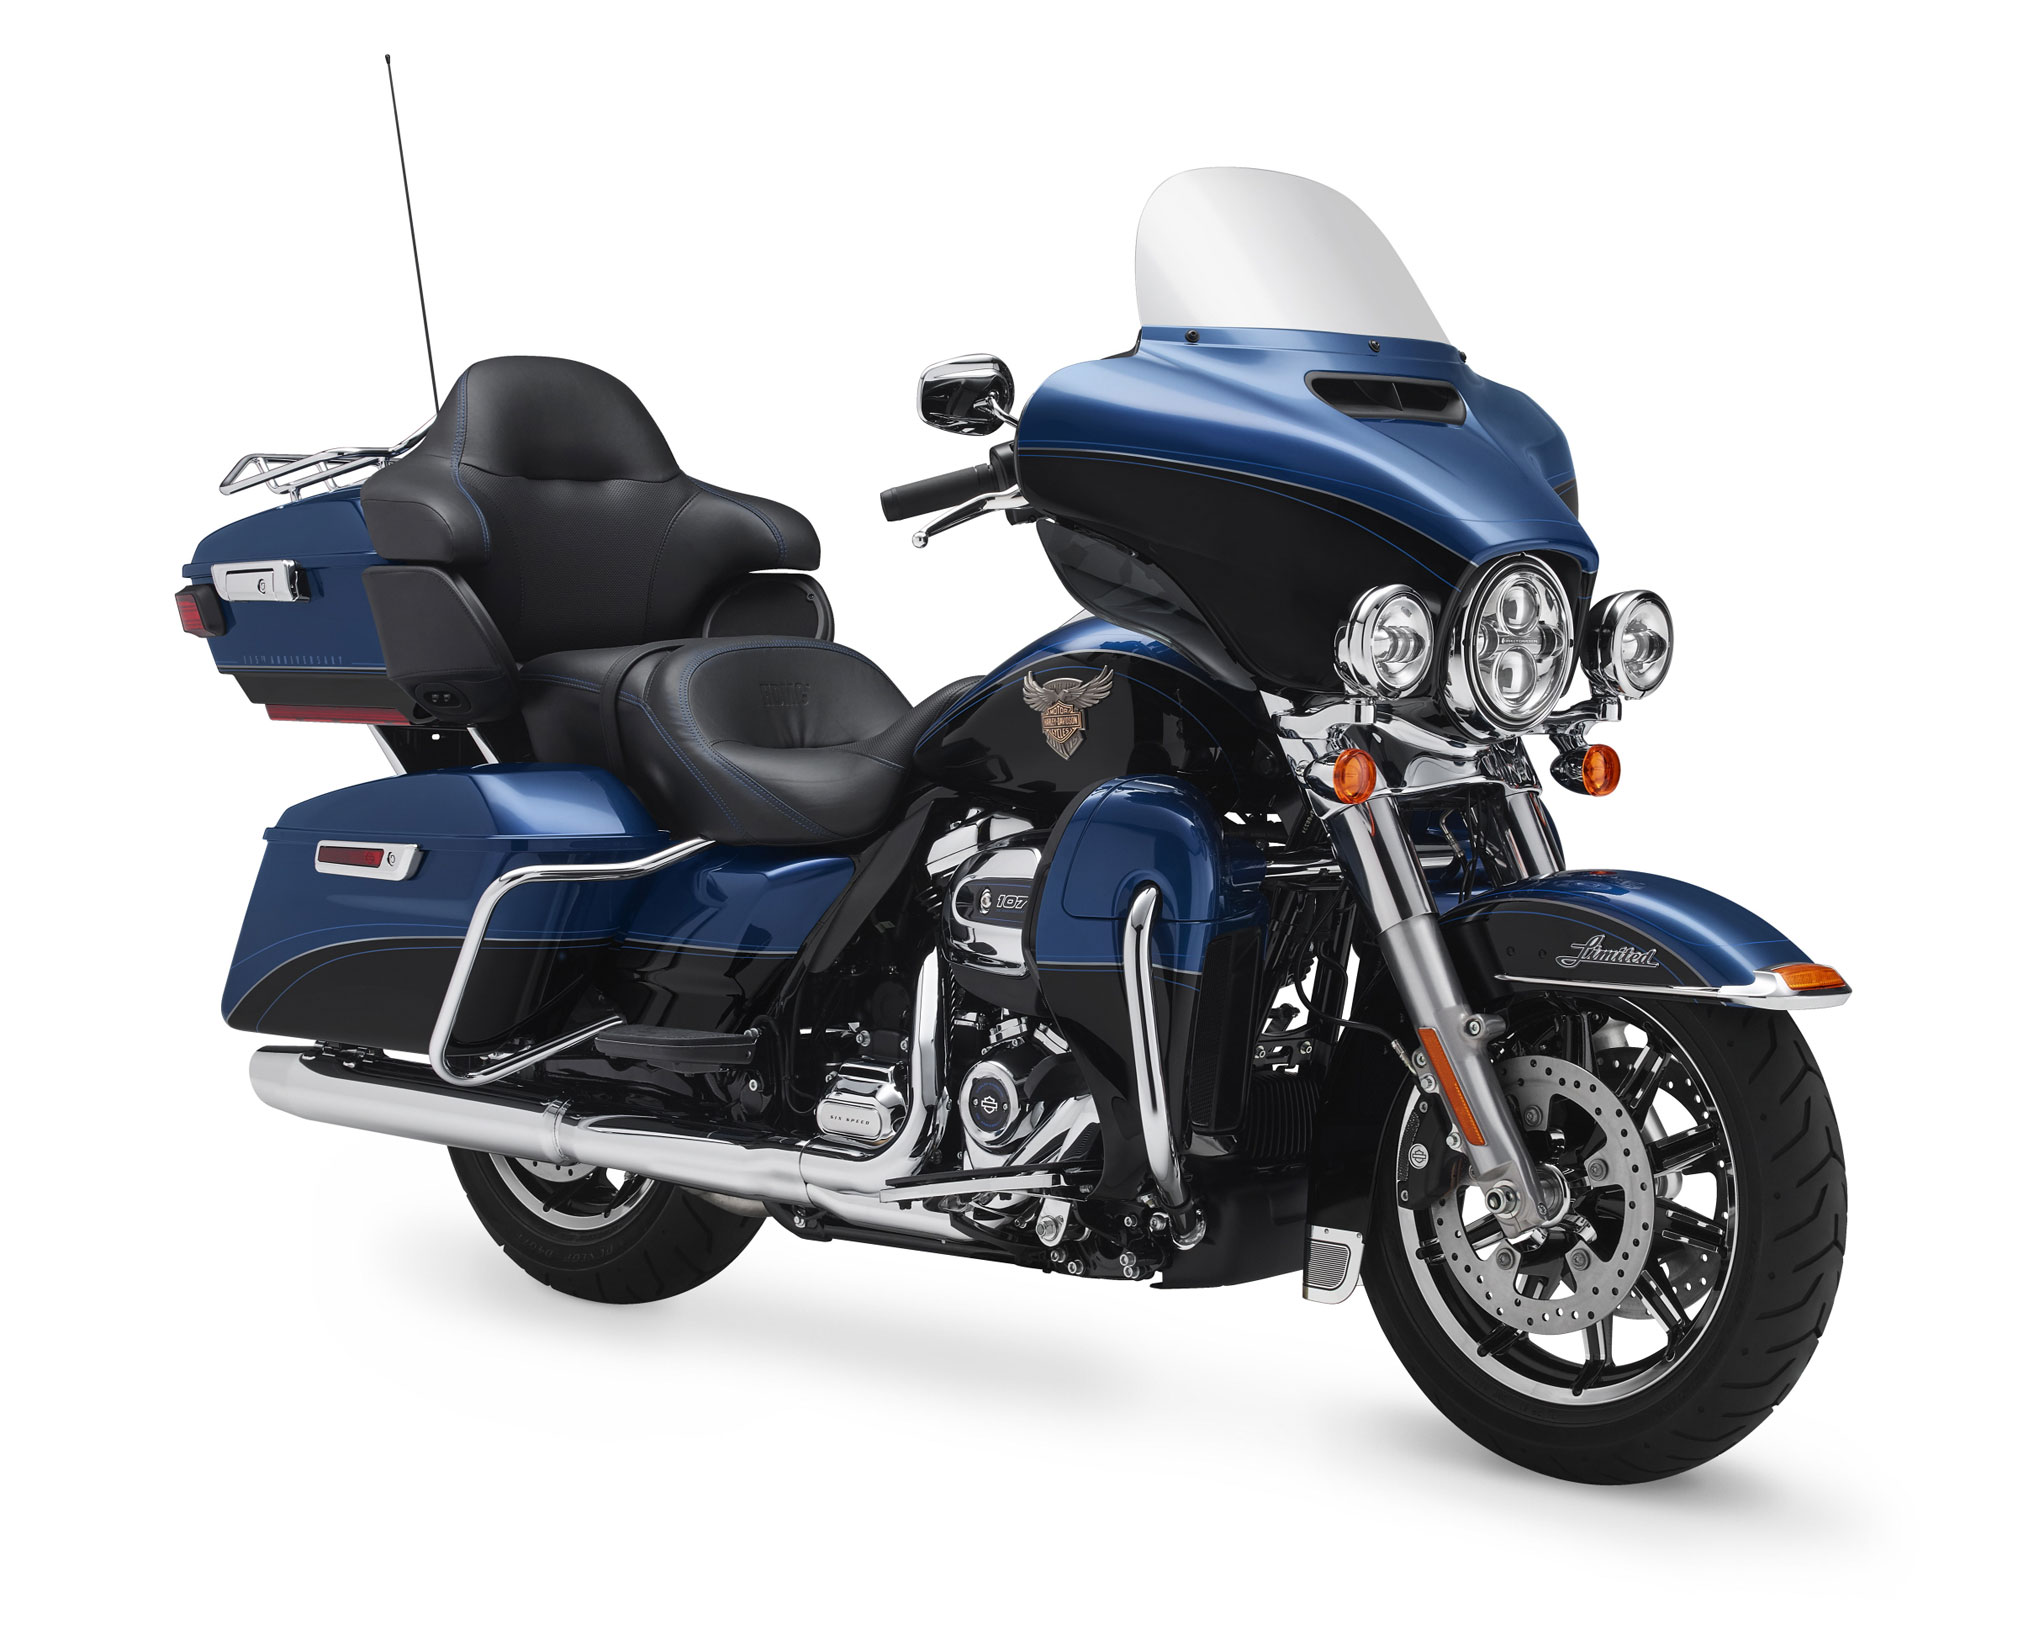 2018-Harley-Davidson-Ultra-Limited-115th-Anniversary4